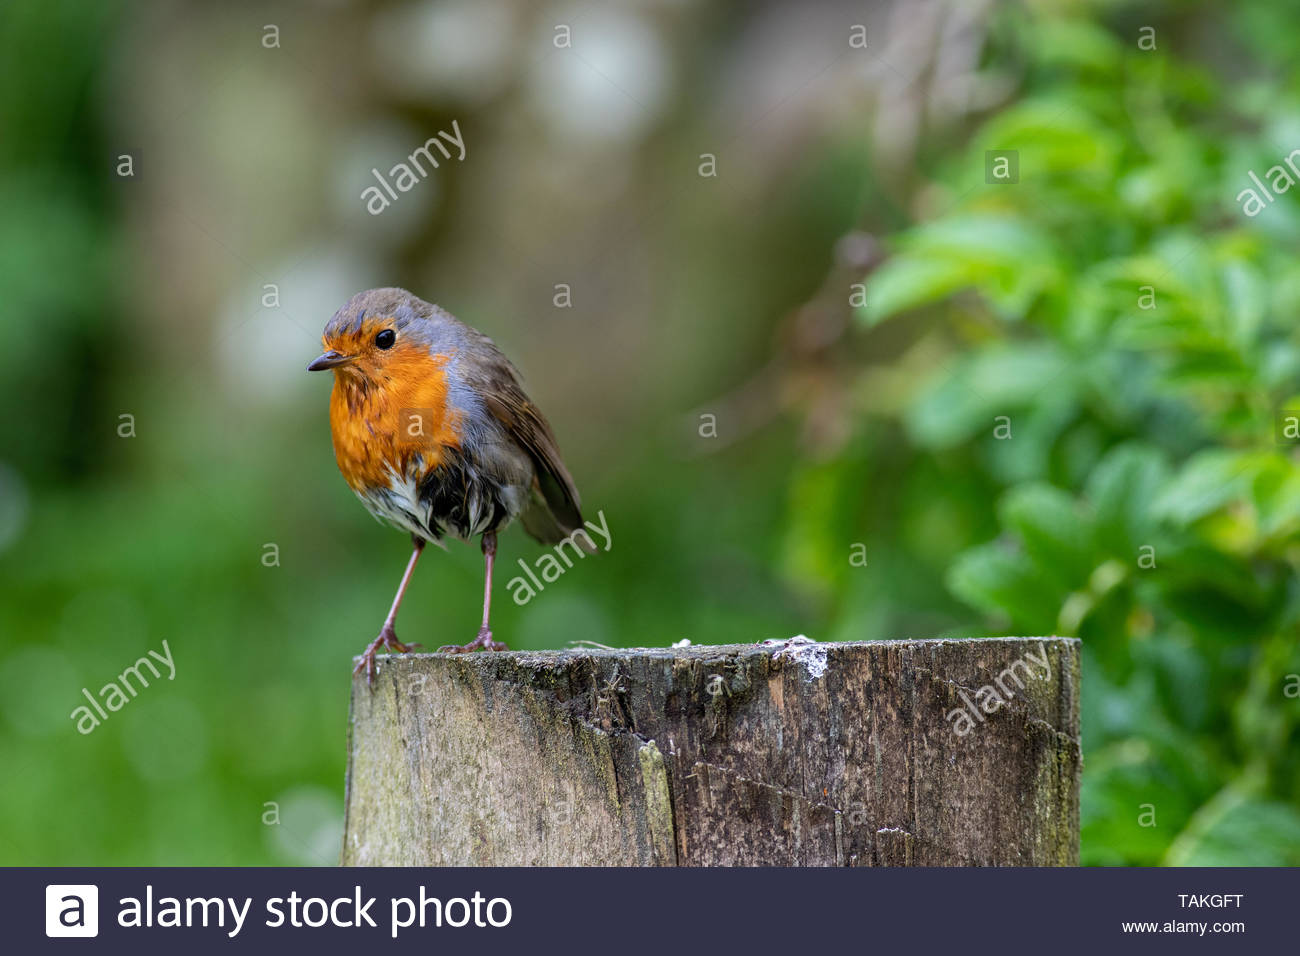 Robin (Erithacus rubecula) perched on fence post - Stock Image